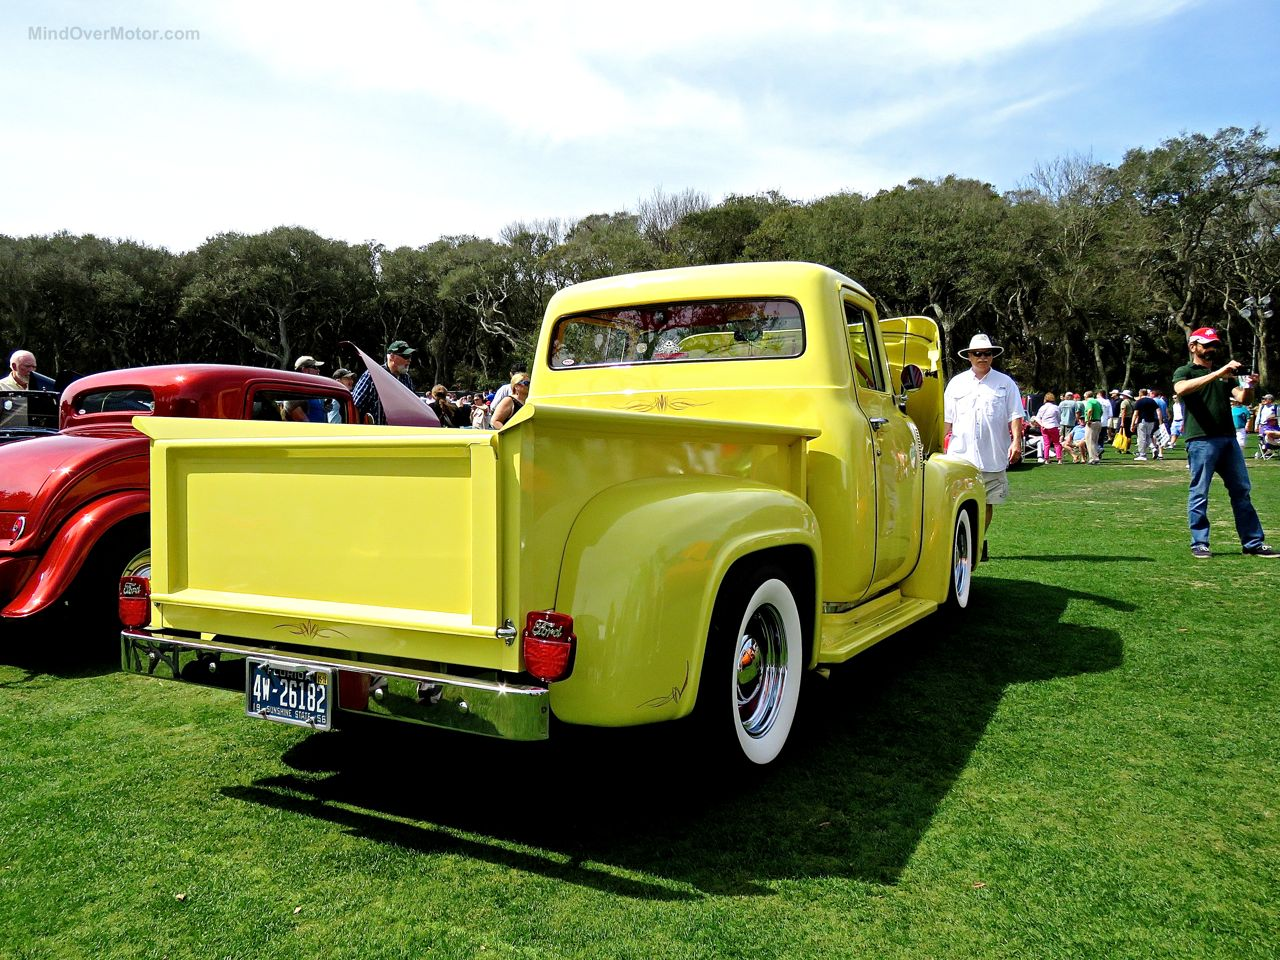 Custom Ford F-100 at Amelia Island 9